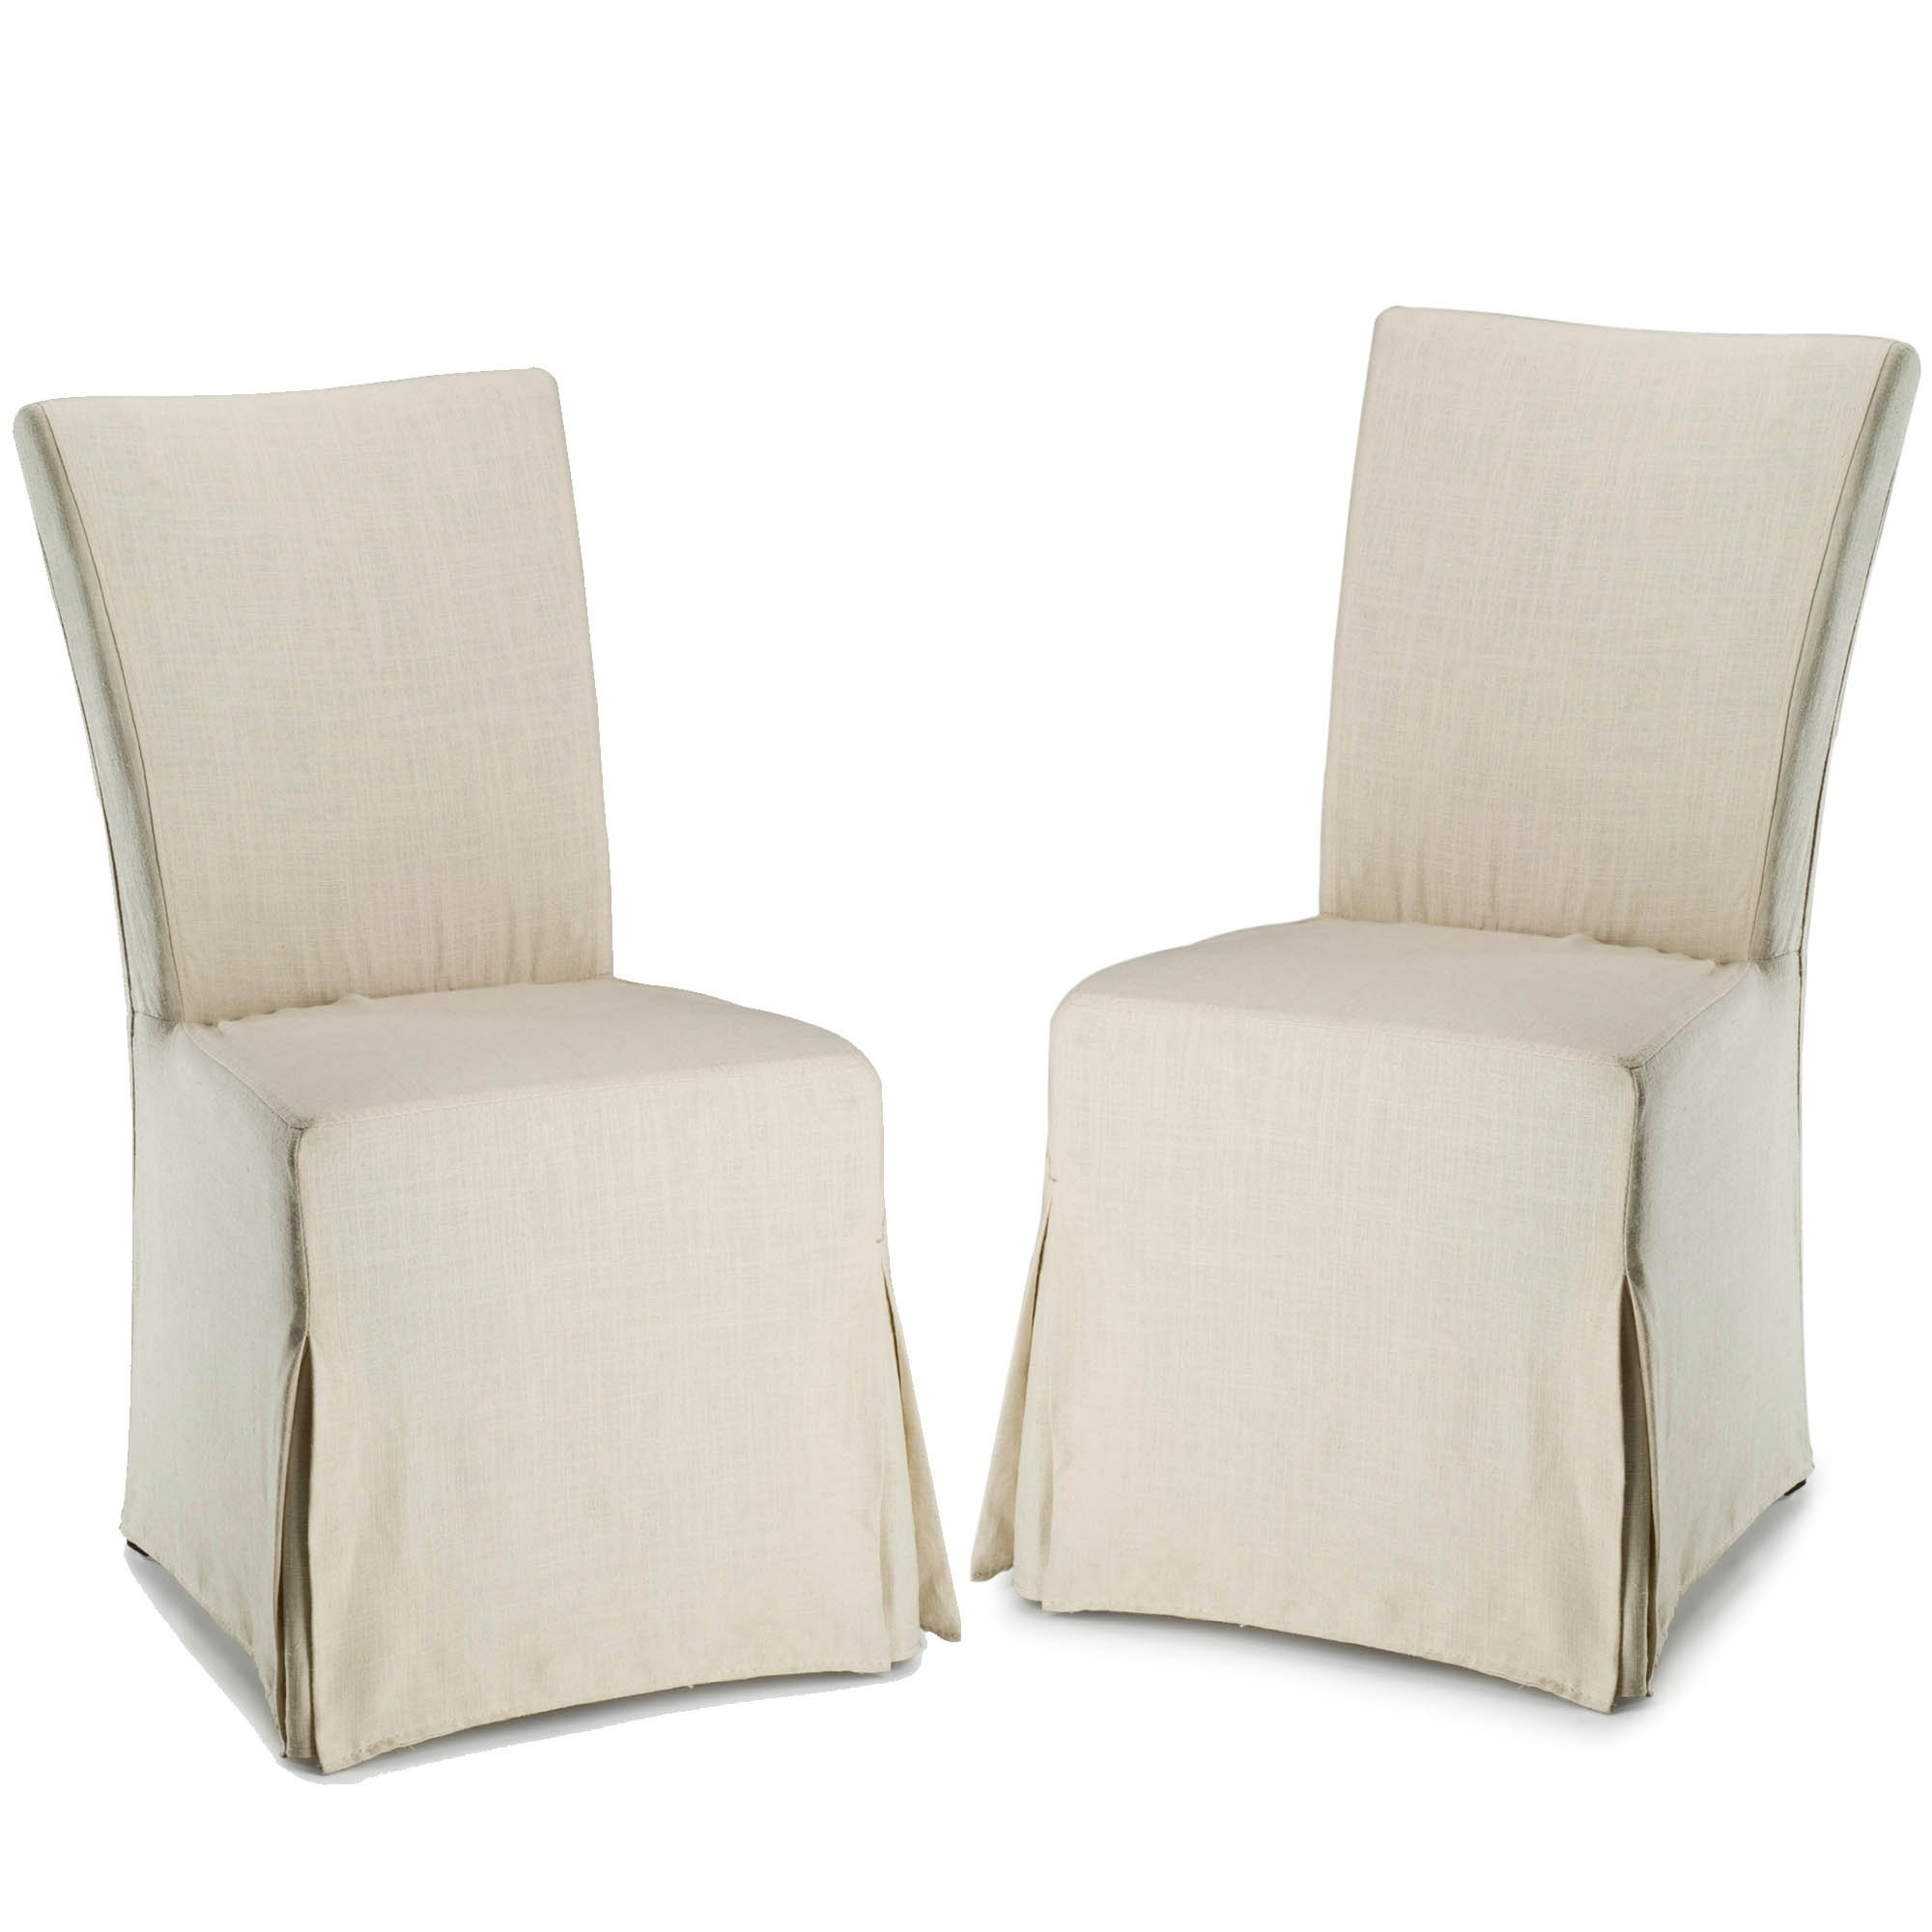 Most Recent Garten Marble Skirted Side Chairs Set Of 2 Inside Shop Safavieh Parsons Dining Slipcover Dining Chairs (Set Of 2) –  (View 11 of 20)